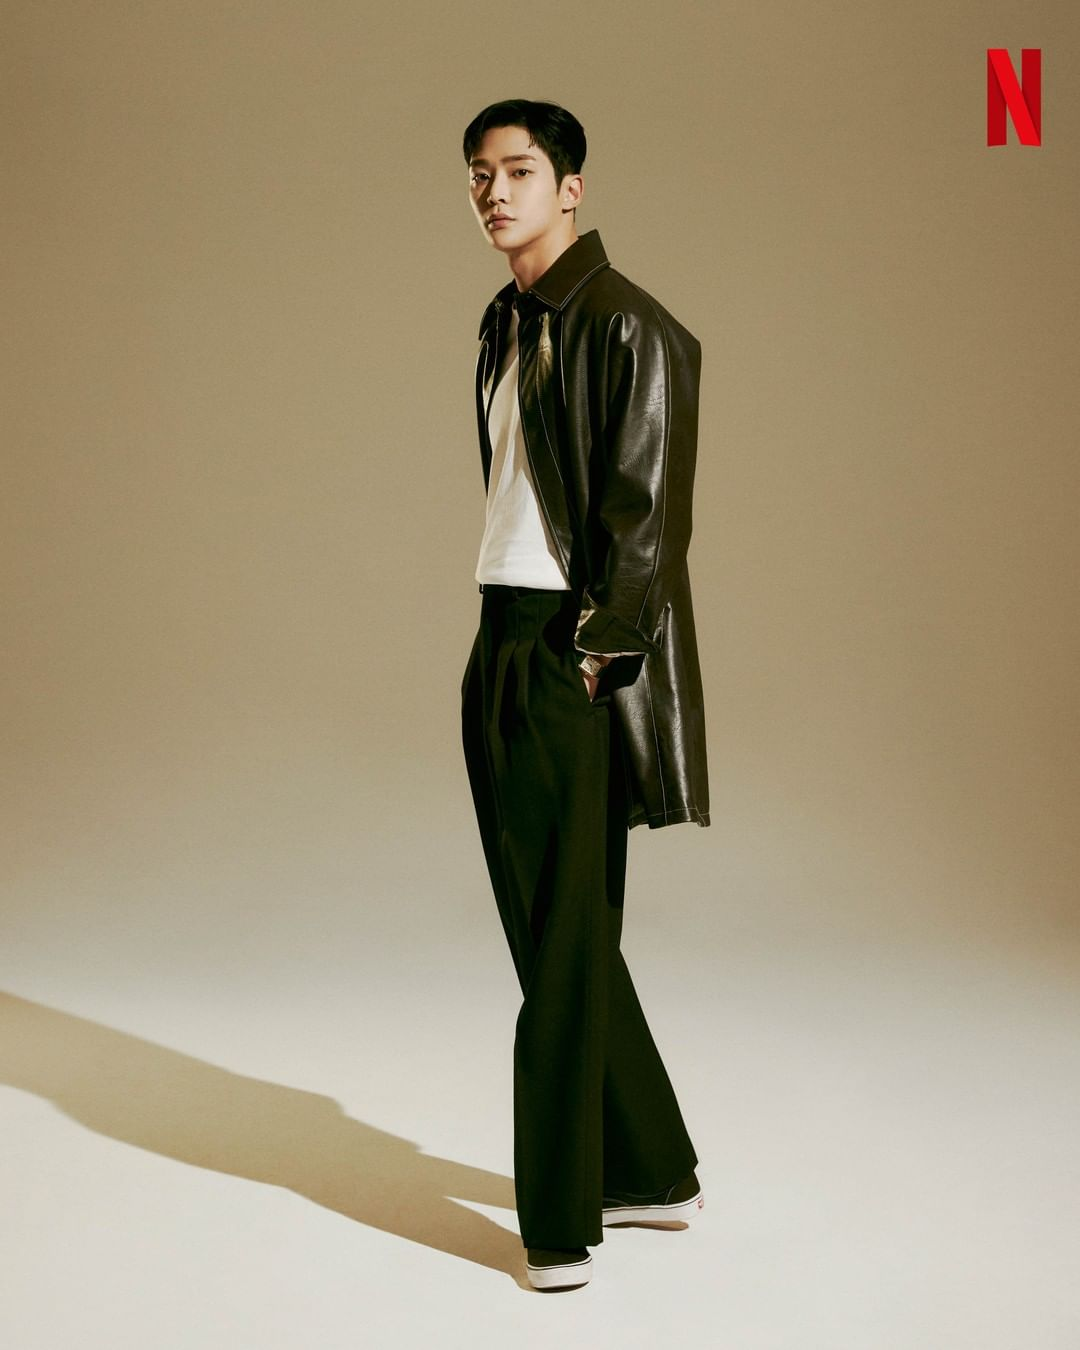 Rowoon cao 1m9